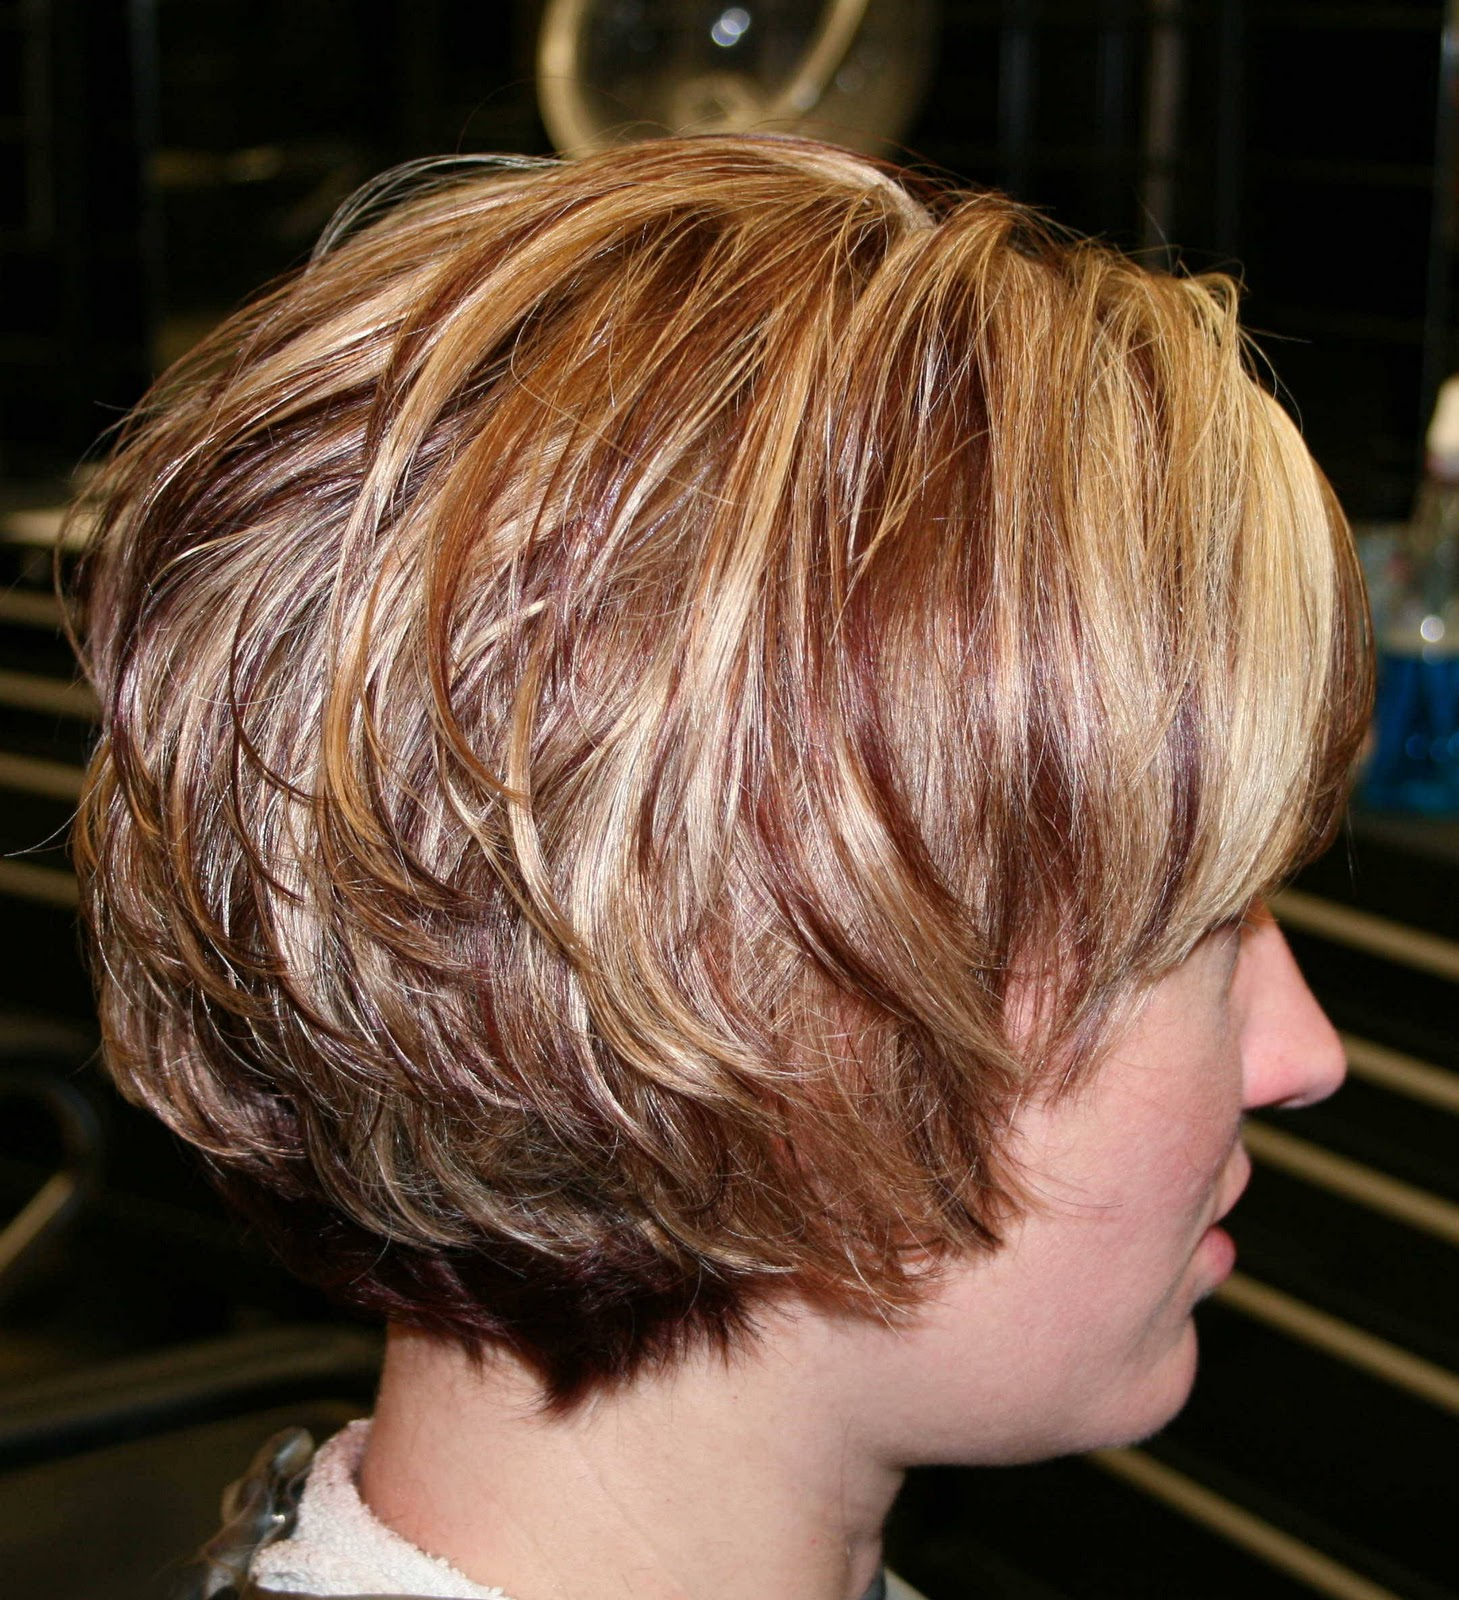 bob+hairstyle-hairstyles-formen..com-IMG_1591.